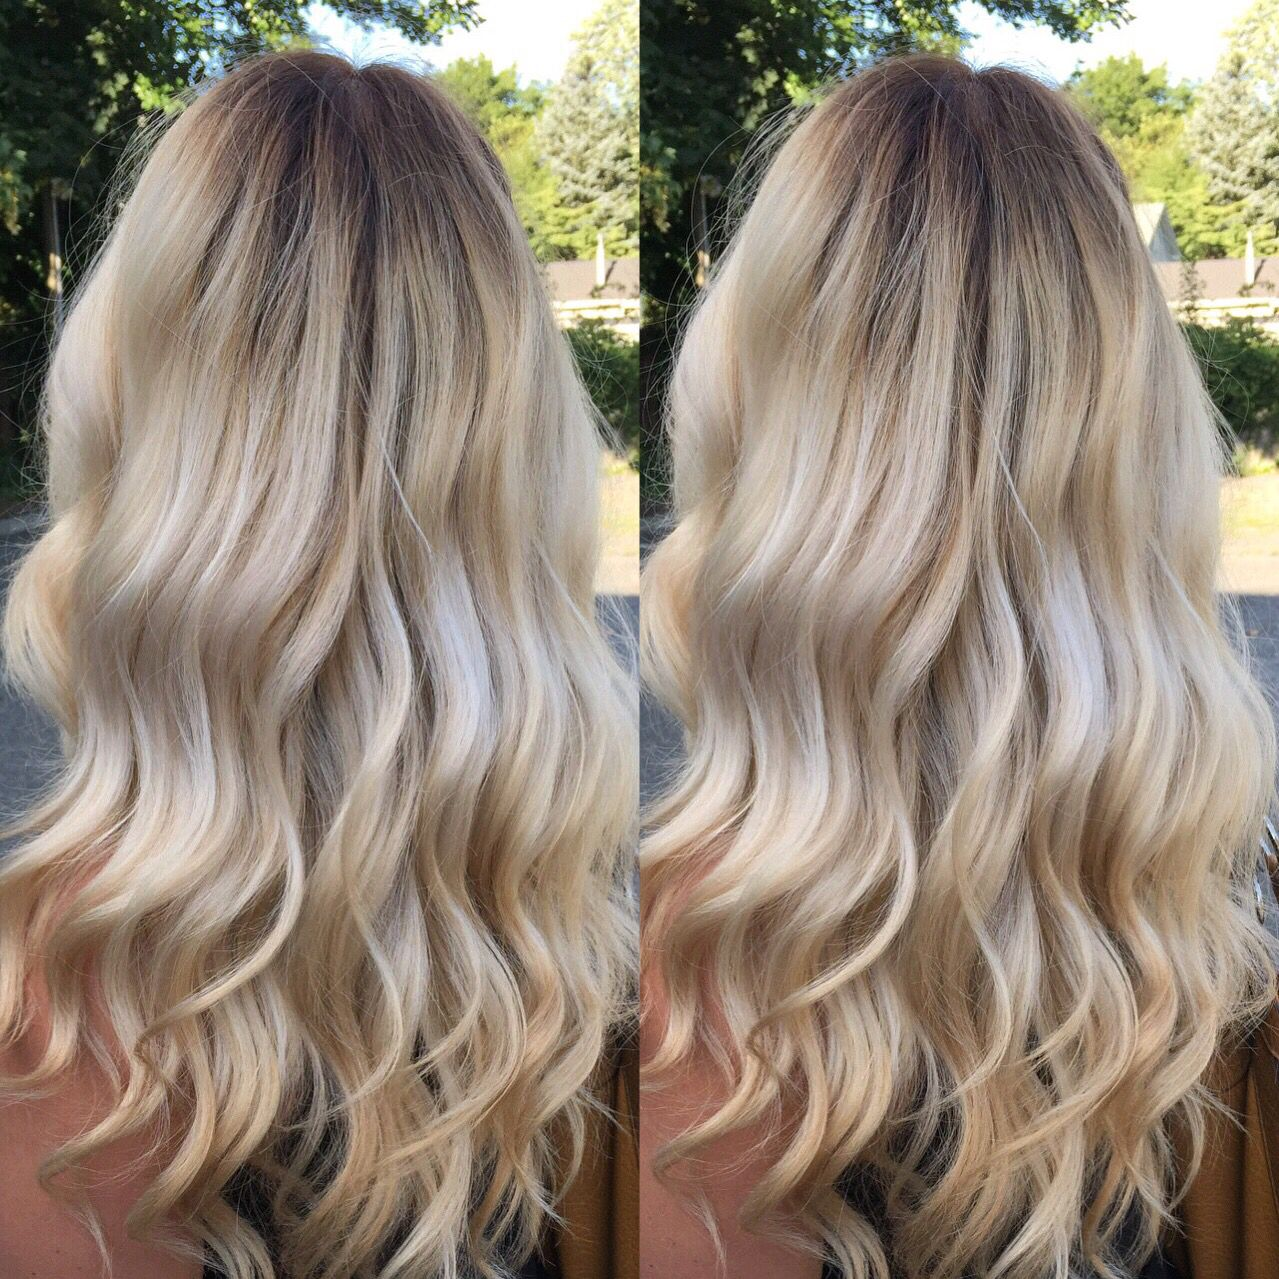 In Love With This Creamy Blonde Dark Root Effect In 2019